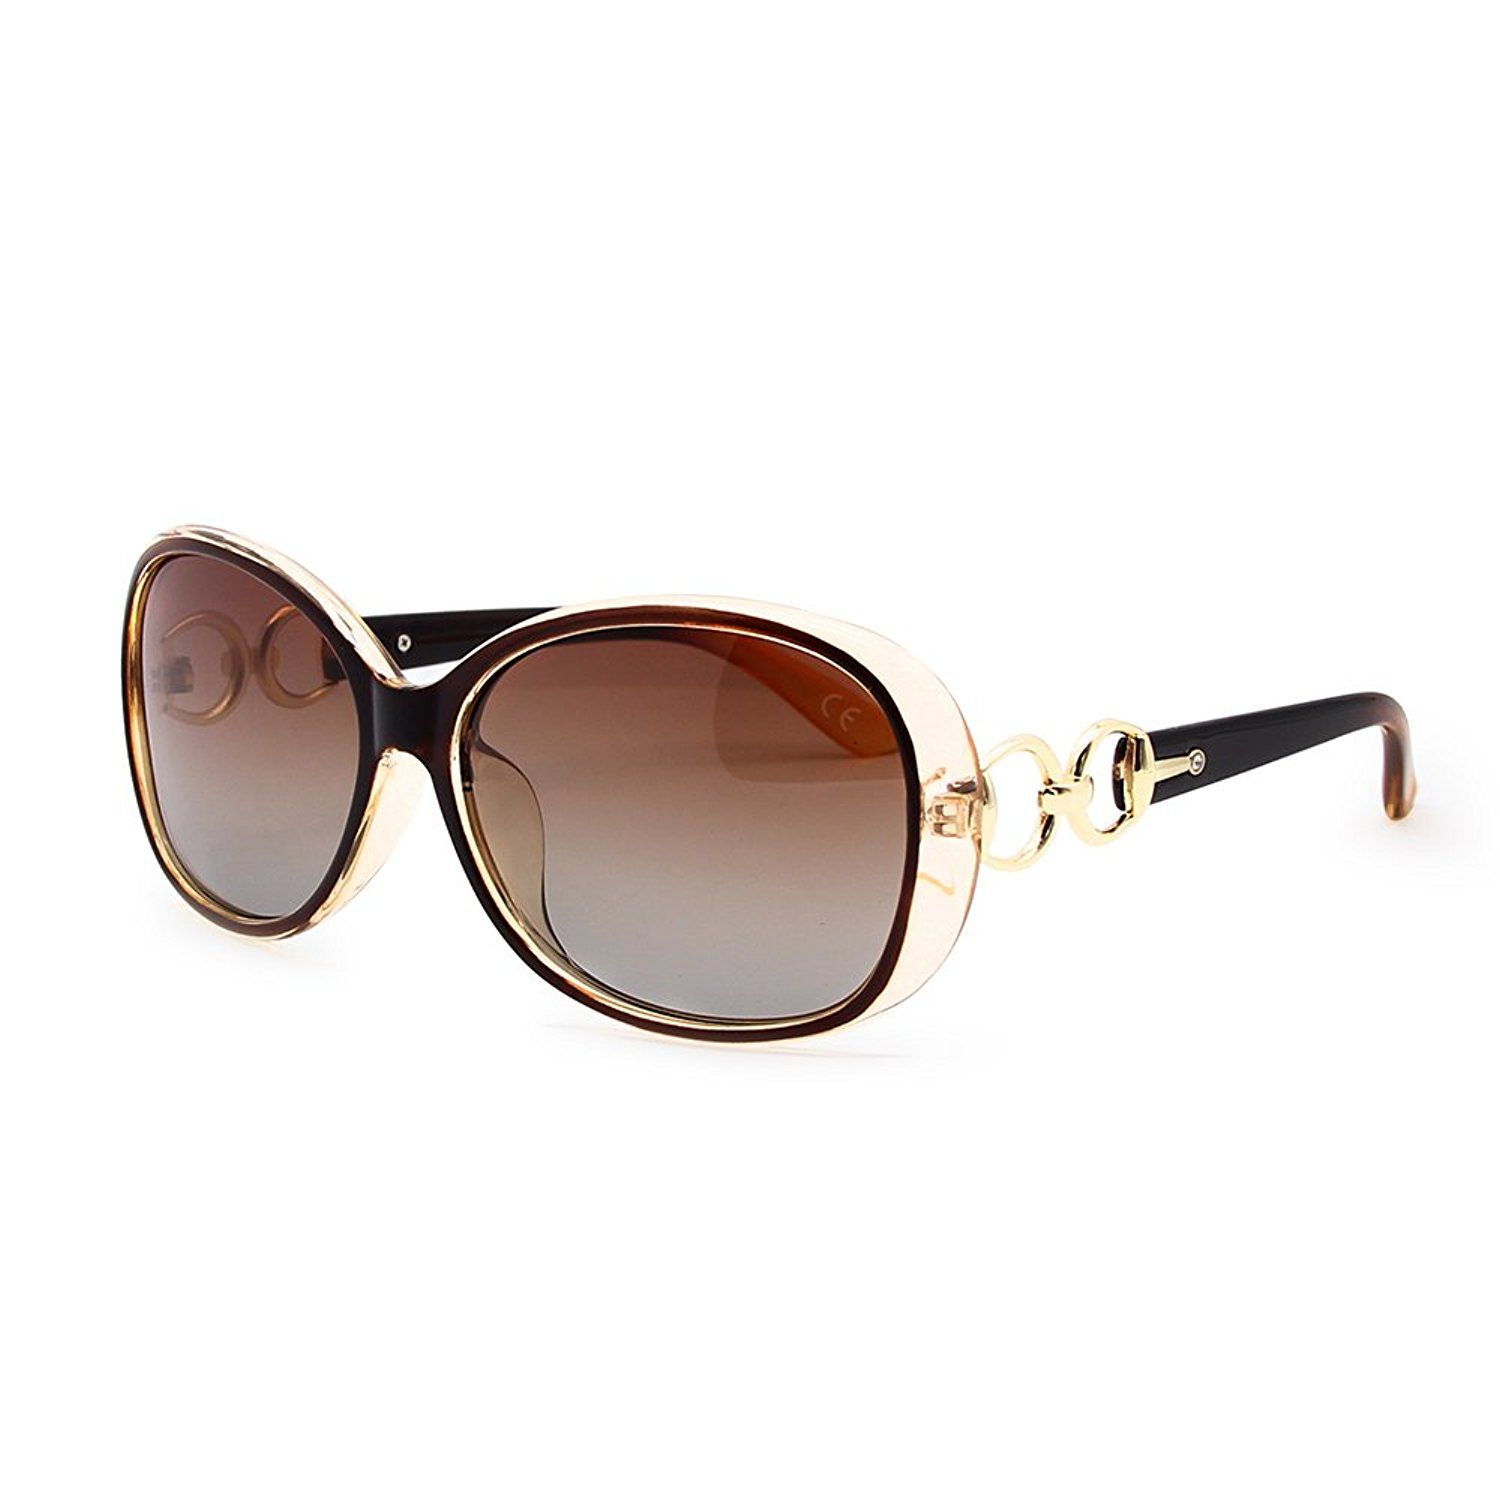 d63bef1af Duco Women's Shades Classic Oversized Polarized Sunglasses 100% UV  Protection 6214 Brown Frame Brown Lens: Amazon.co.uk: Cloth…